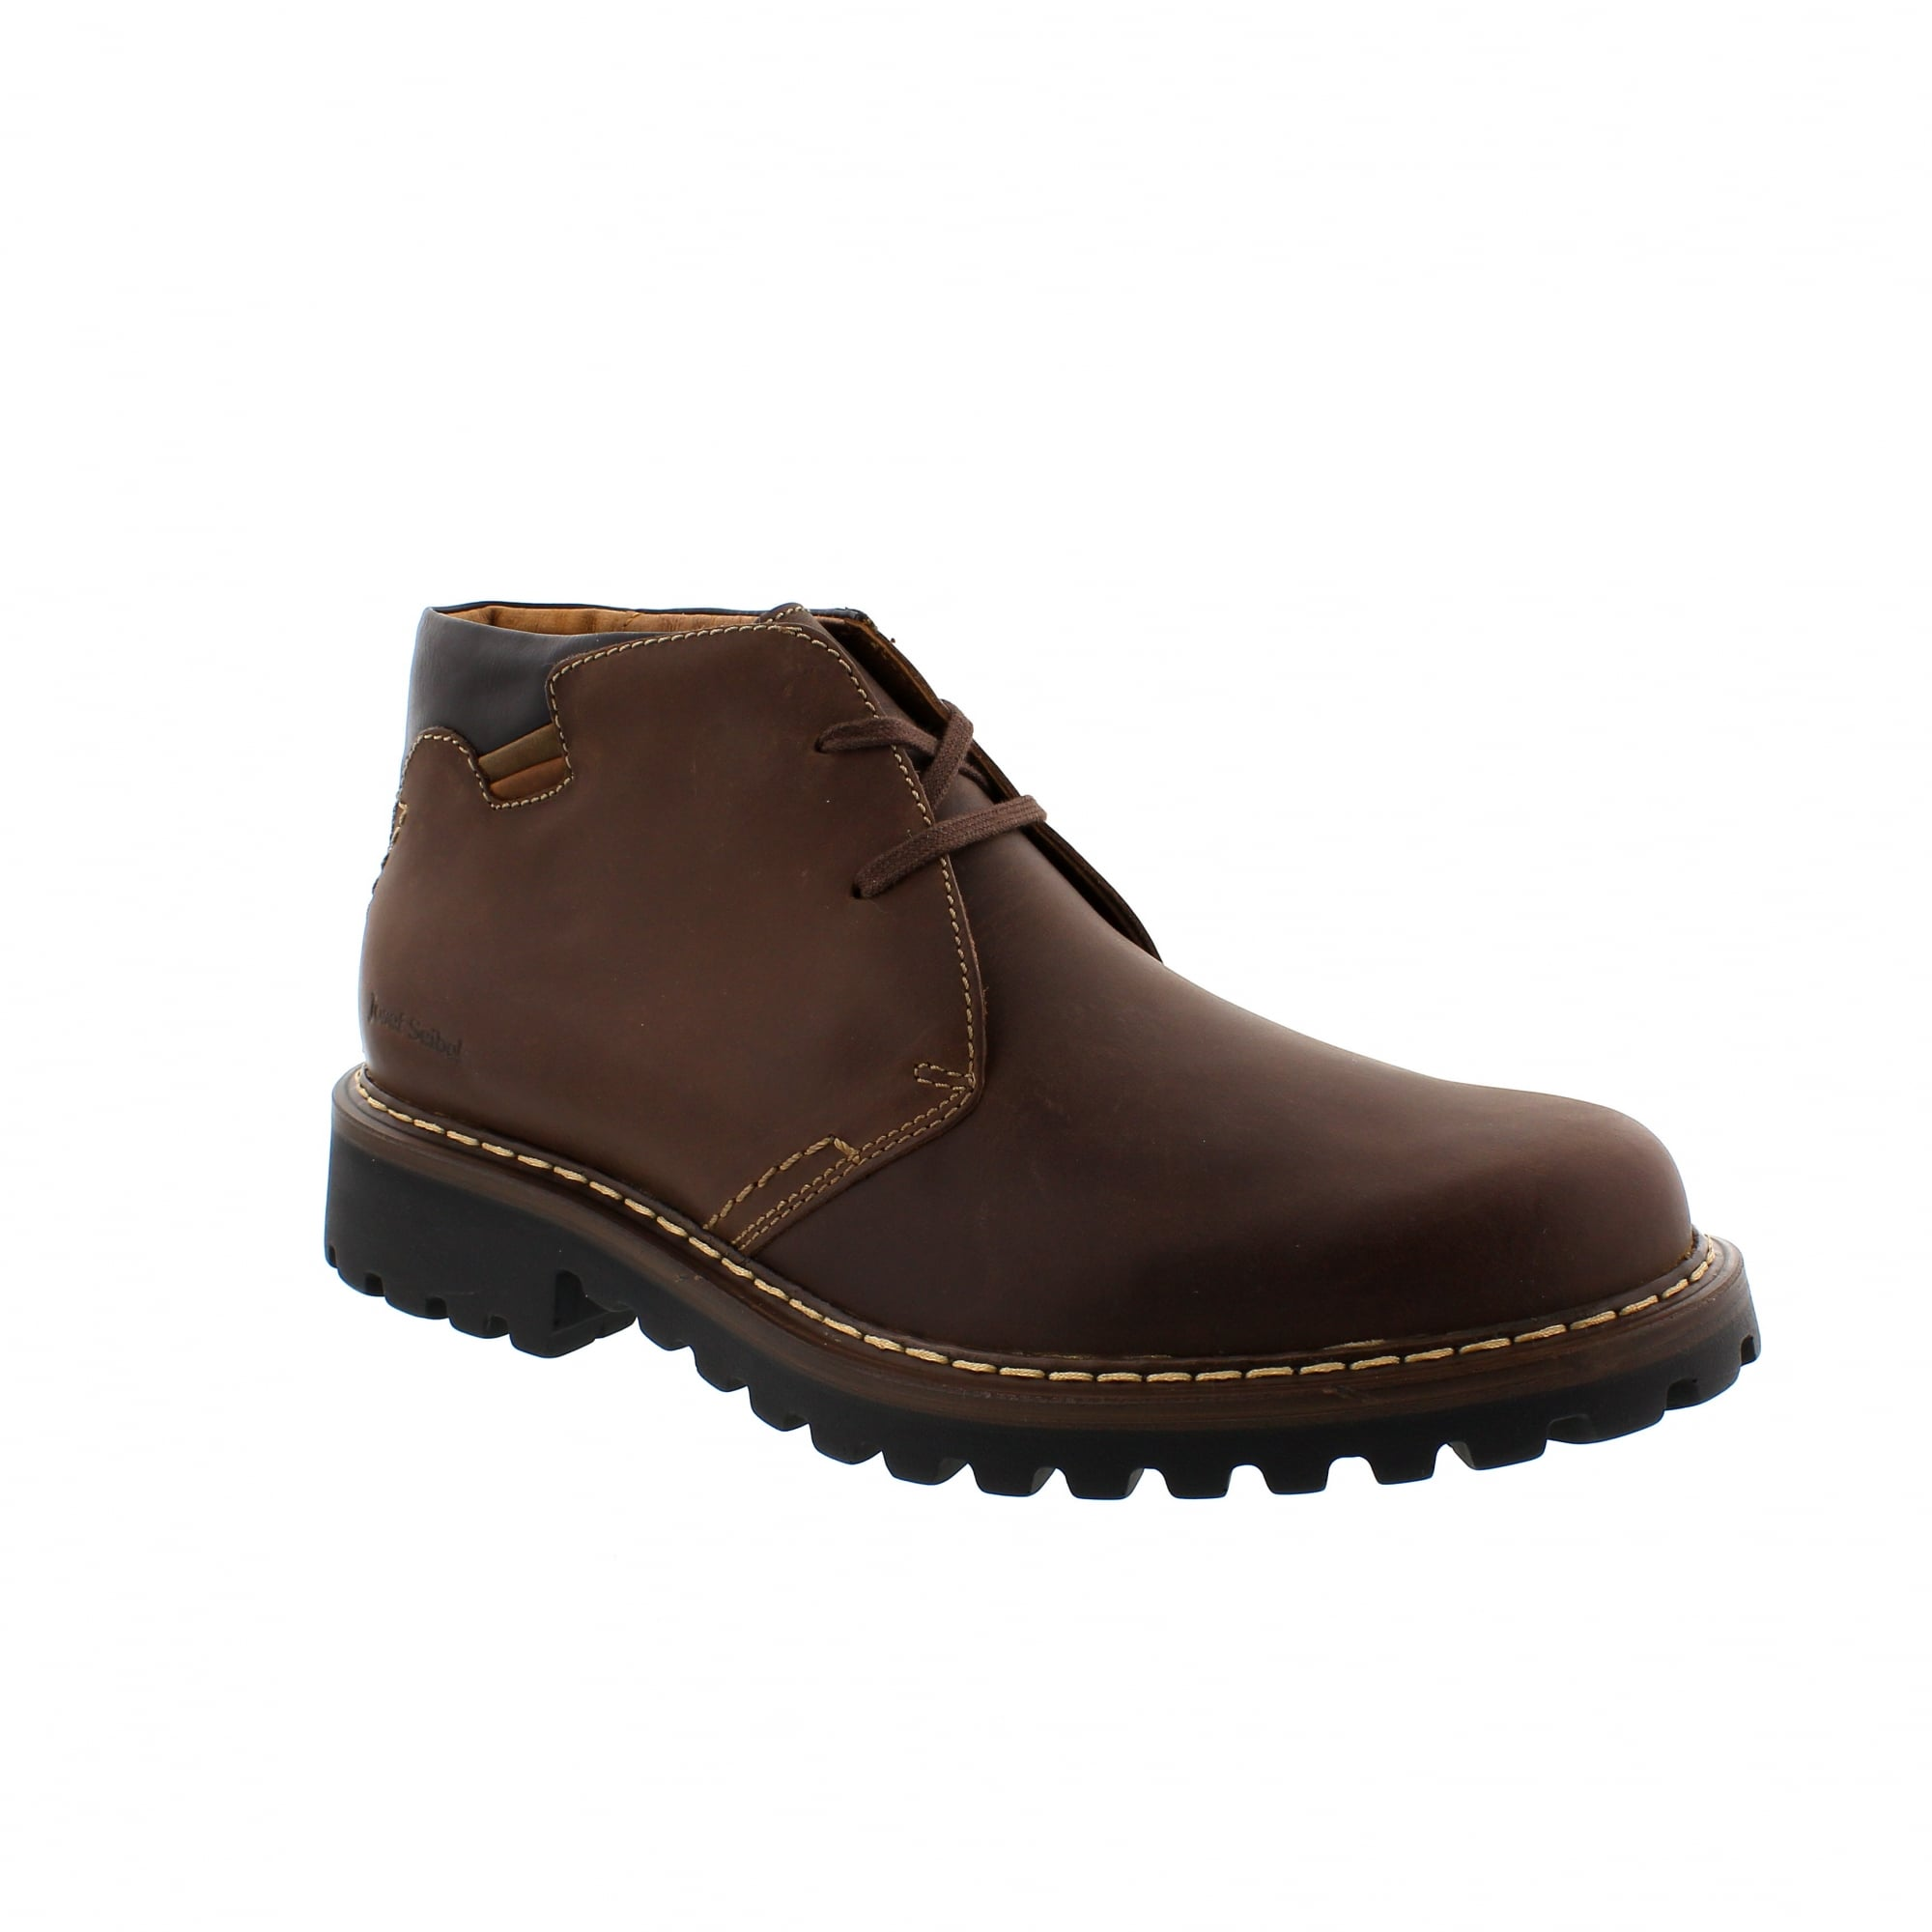 50b89f48bf60f Josef Seibel Carter 21602-66354 Mens Ankle Boots | Rogerson Shoes